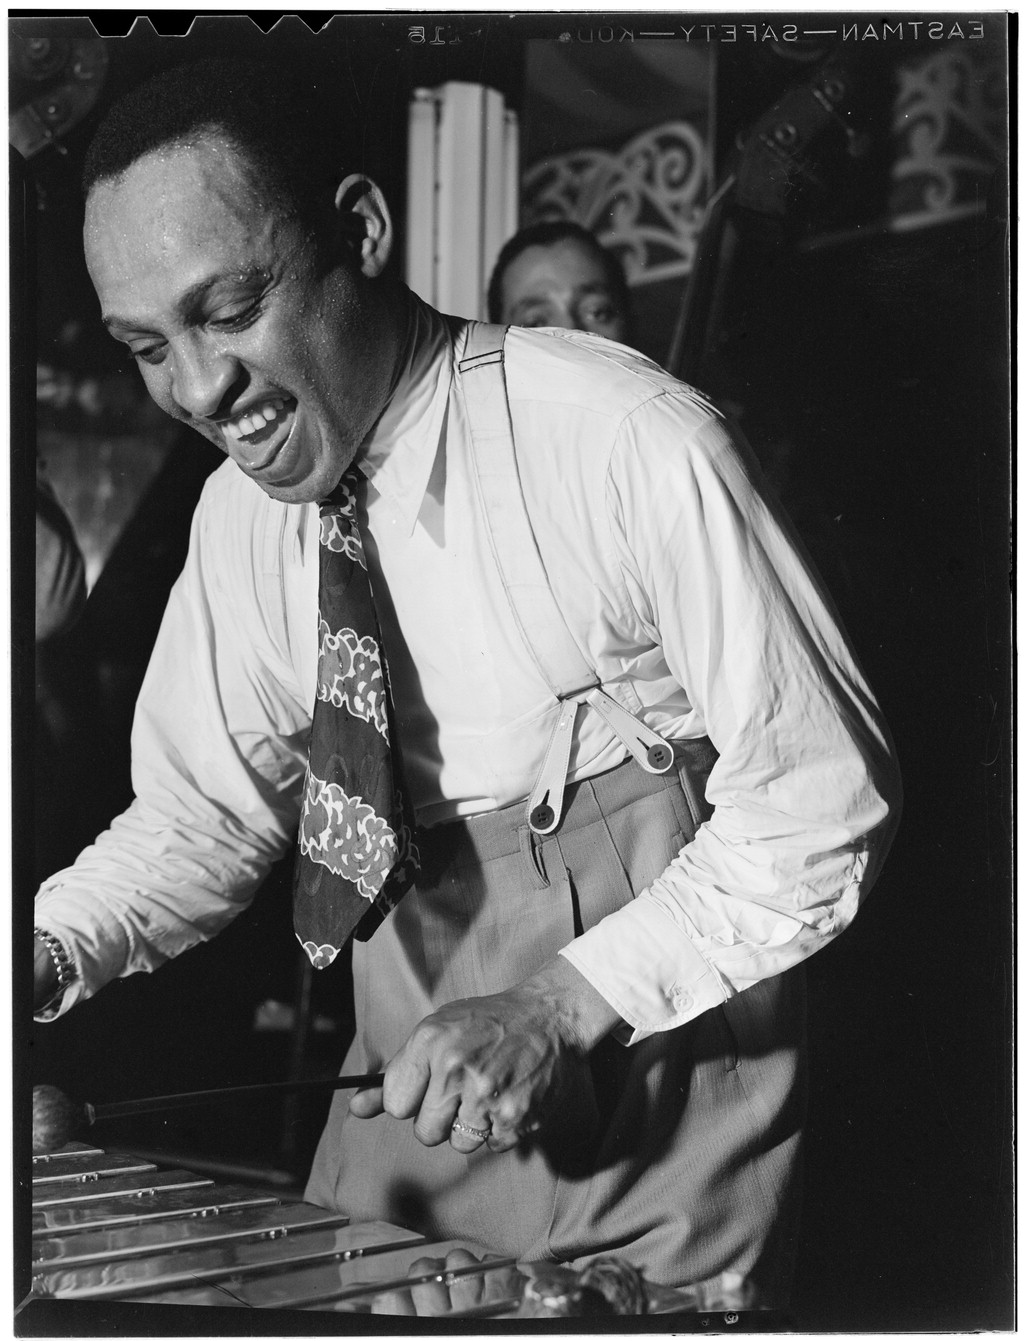 Portrait of Lionel Hampton, Aquarium, New York, N.Y., ca. June 1946 (LOC)